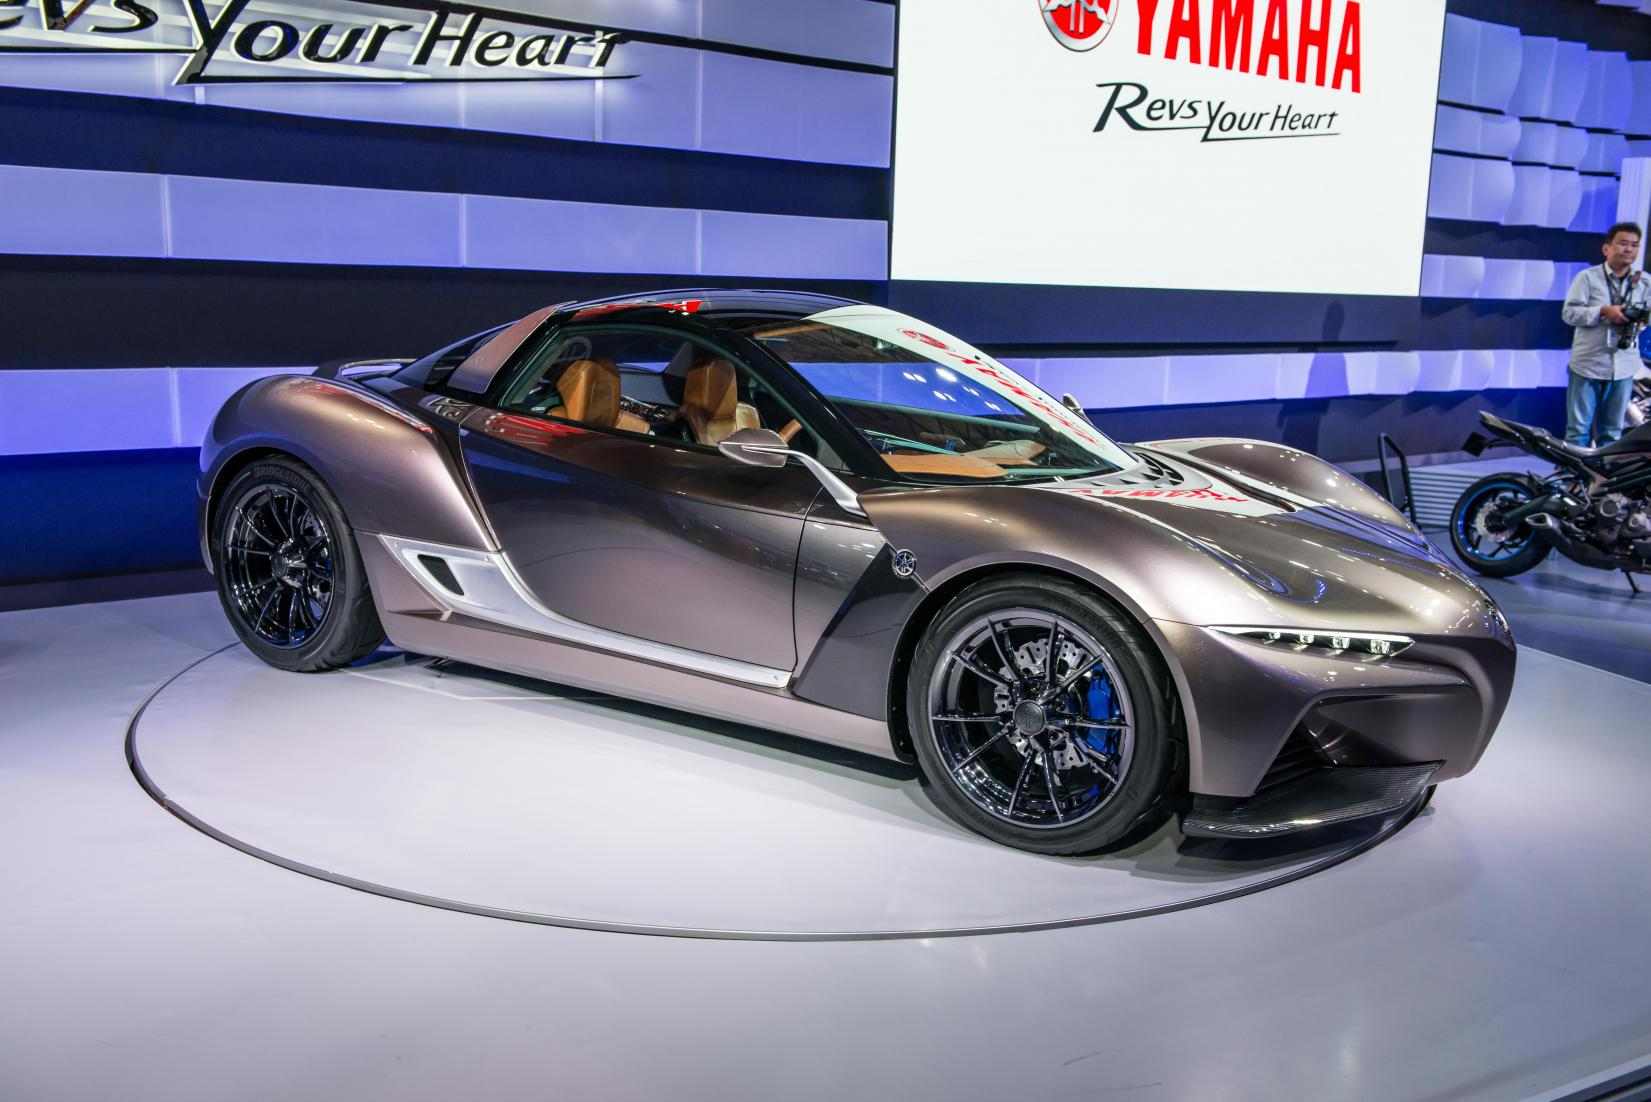 Yamaha S Bike Inspired Sports Car Shifting Gears